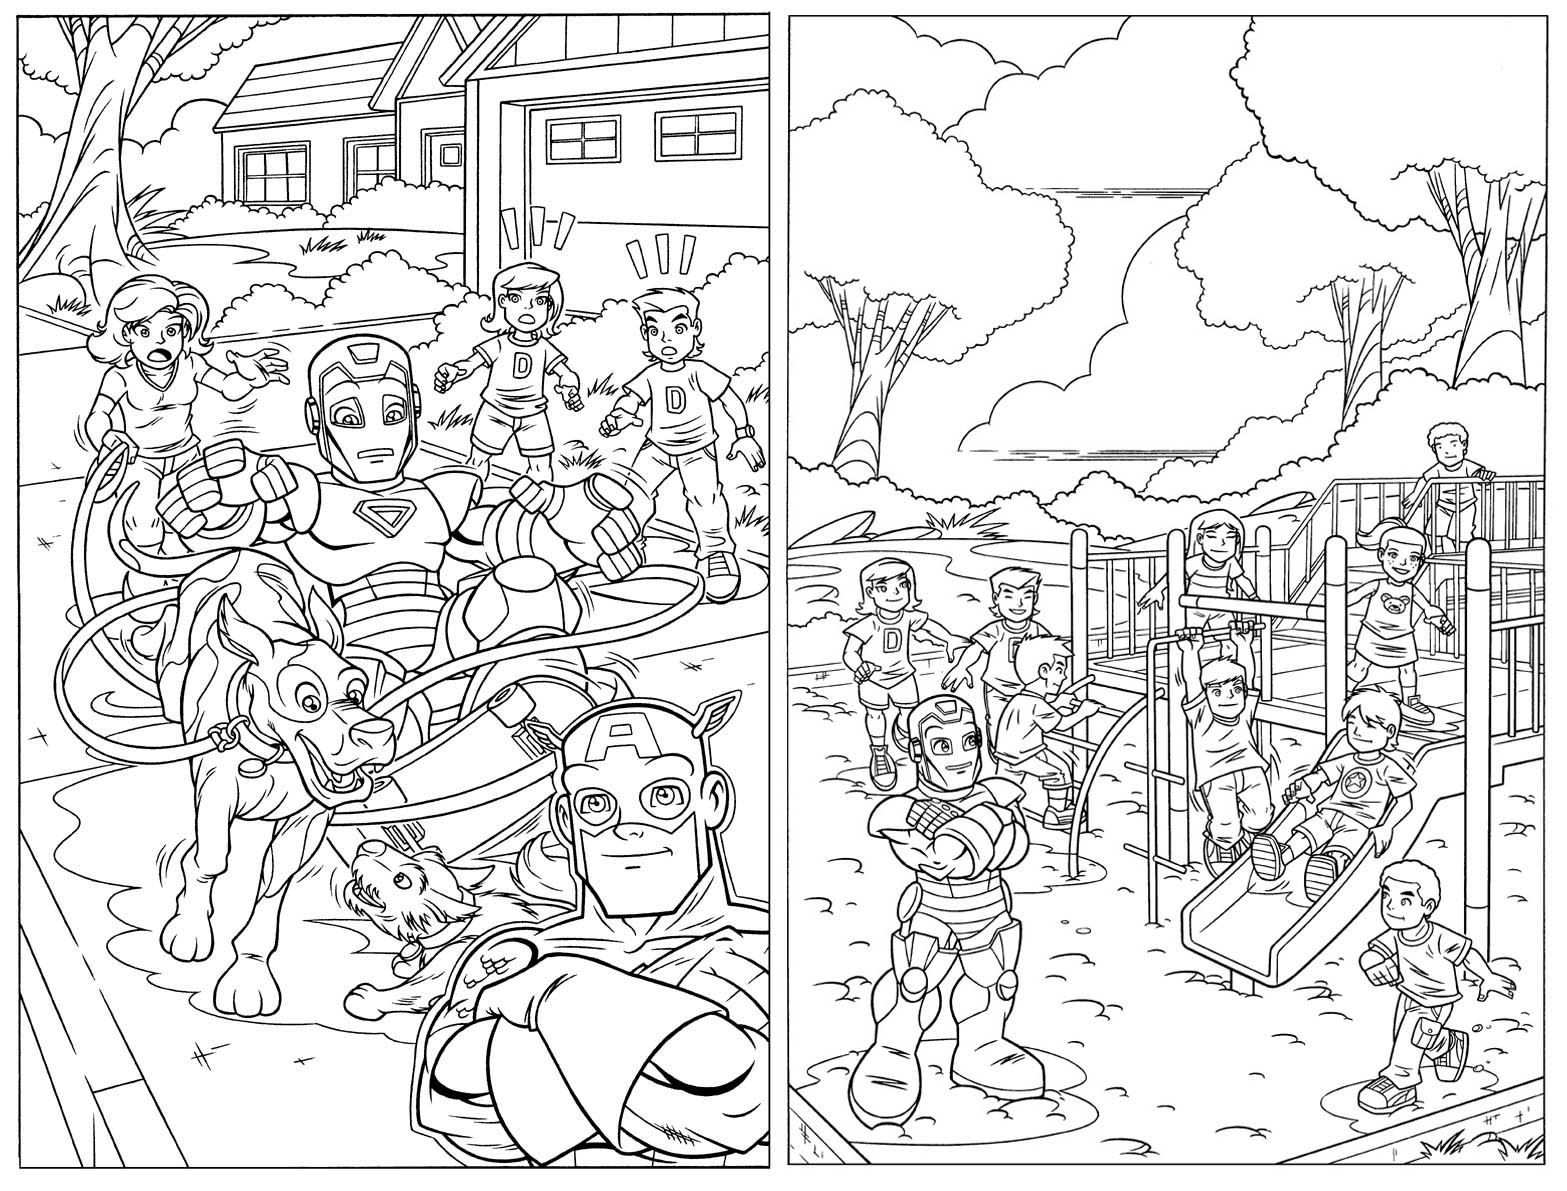 Marvel super hero squad az coloring pages az coloring pages for Super hero squad coloring page